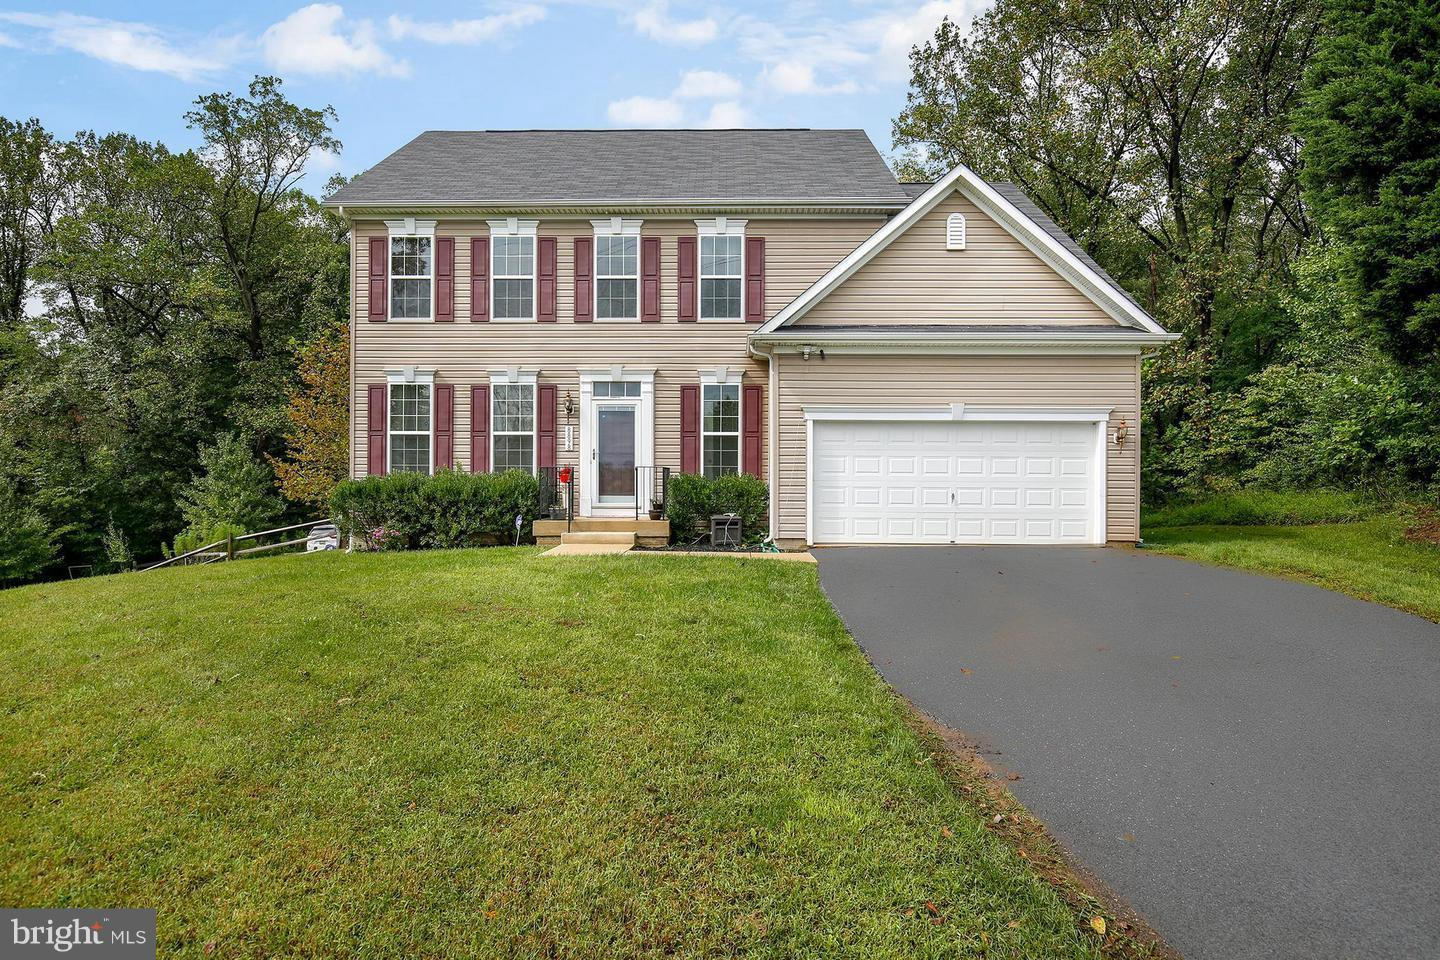 8898 OLD MONTGOMERY ROAD, COLUMBIA, MD 21045